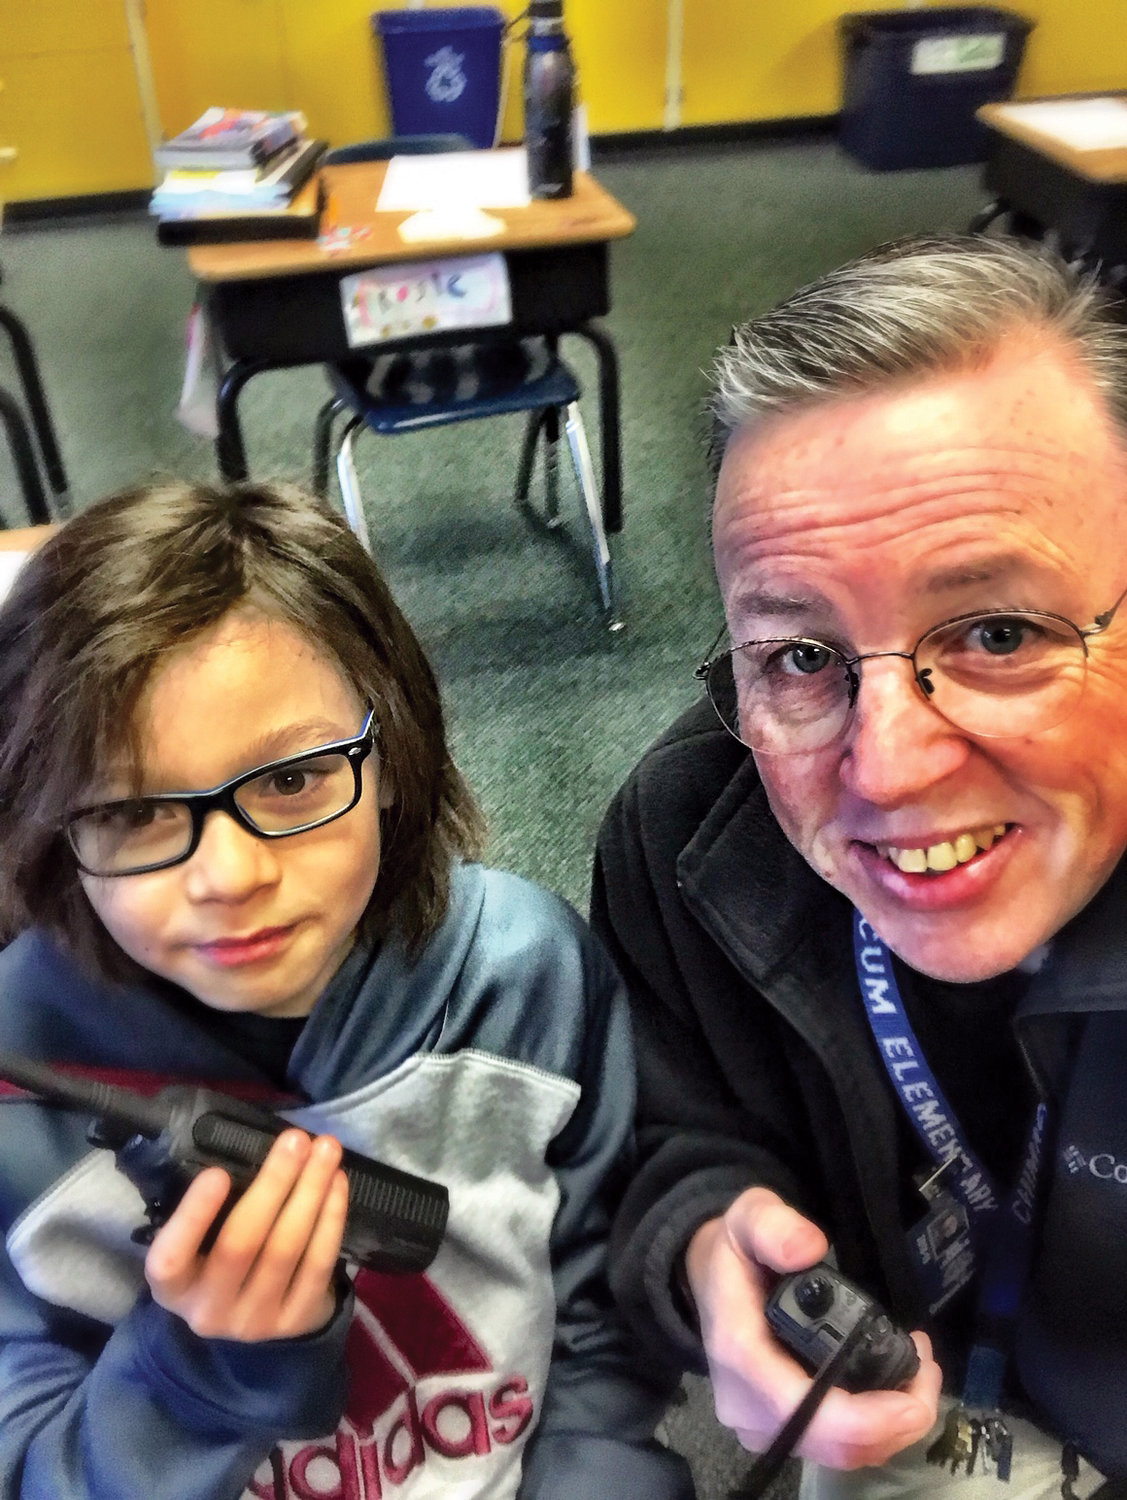 Chimacum Elementary fourth-grader Ronin Peralta is ready to pursue ham radio with Chimacum Elementary teacher James Betteley.